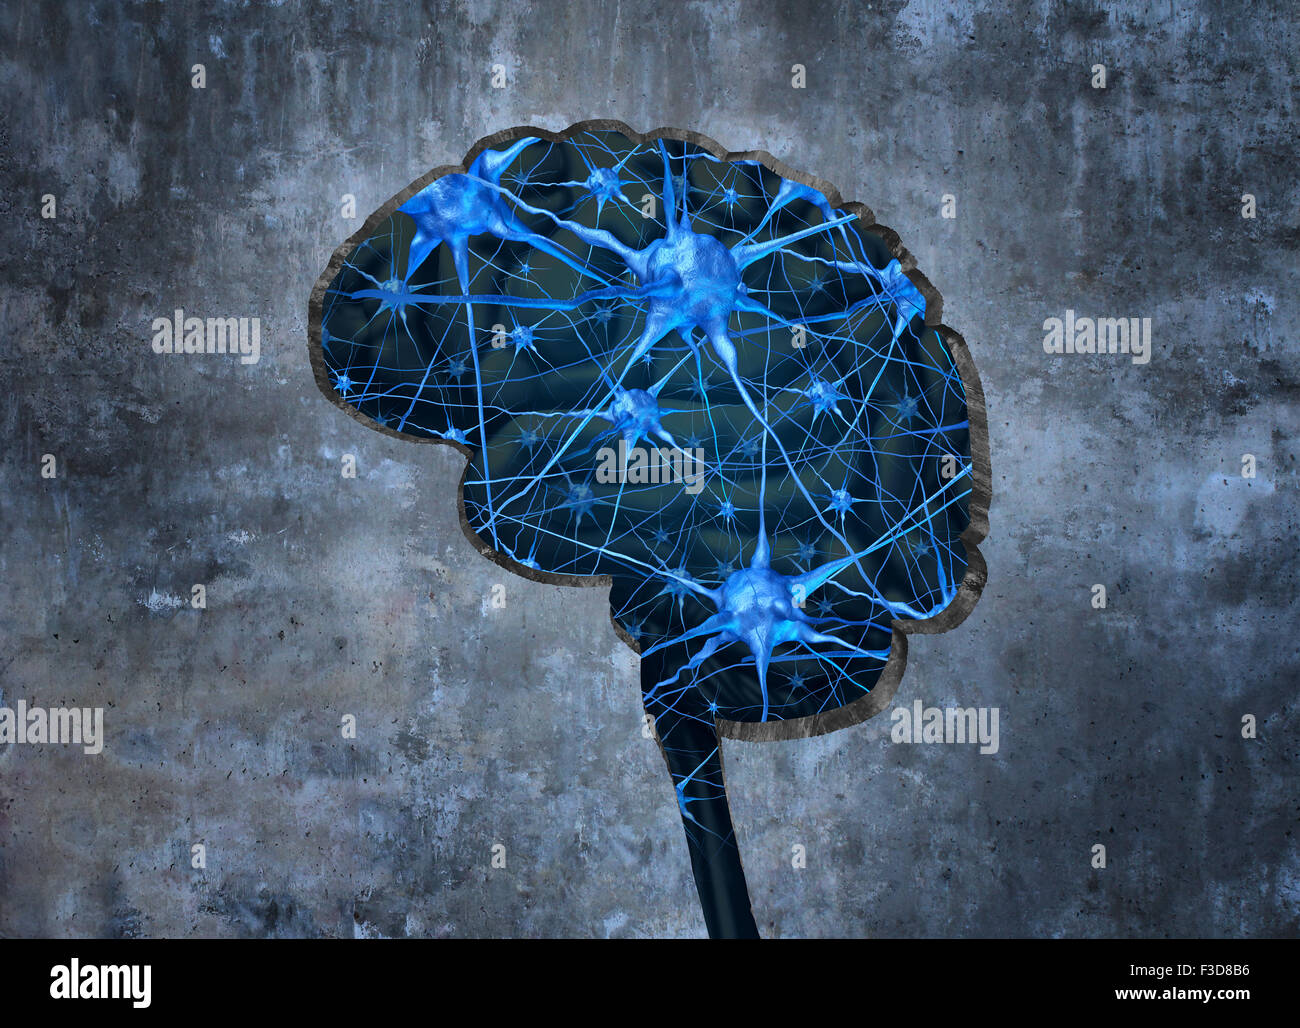 Inside human neurology research concept examining the mind of a human to heal memory loss or cells due to dementia - Stock Image